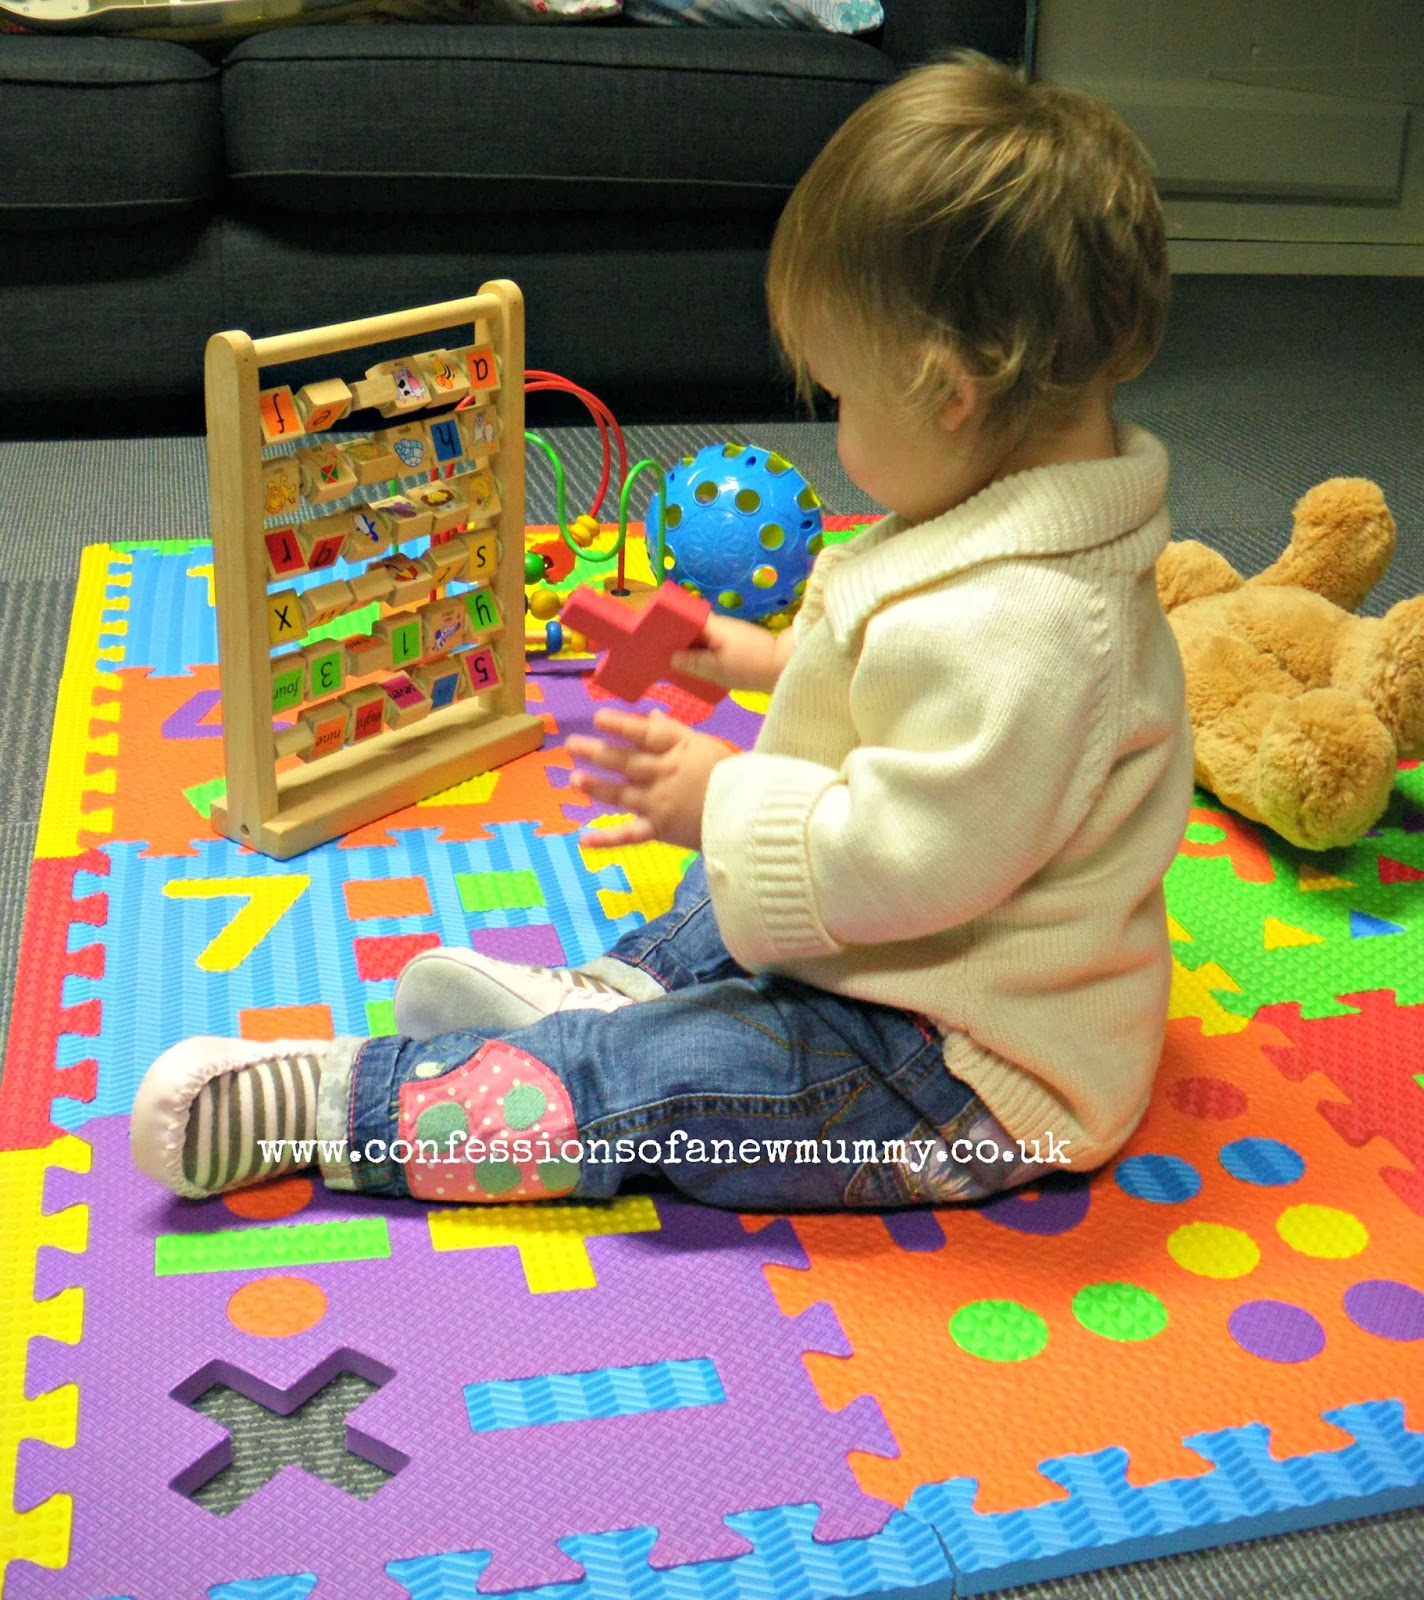 Review soft floor kids playmat confessions of a new mummy for Floor kids review